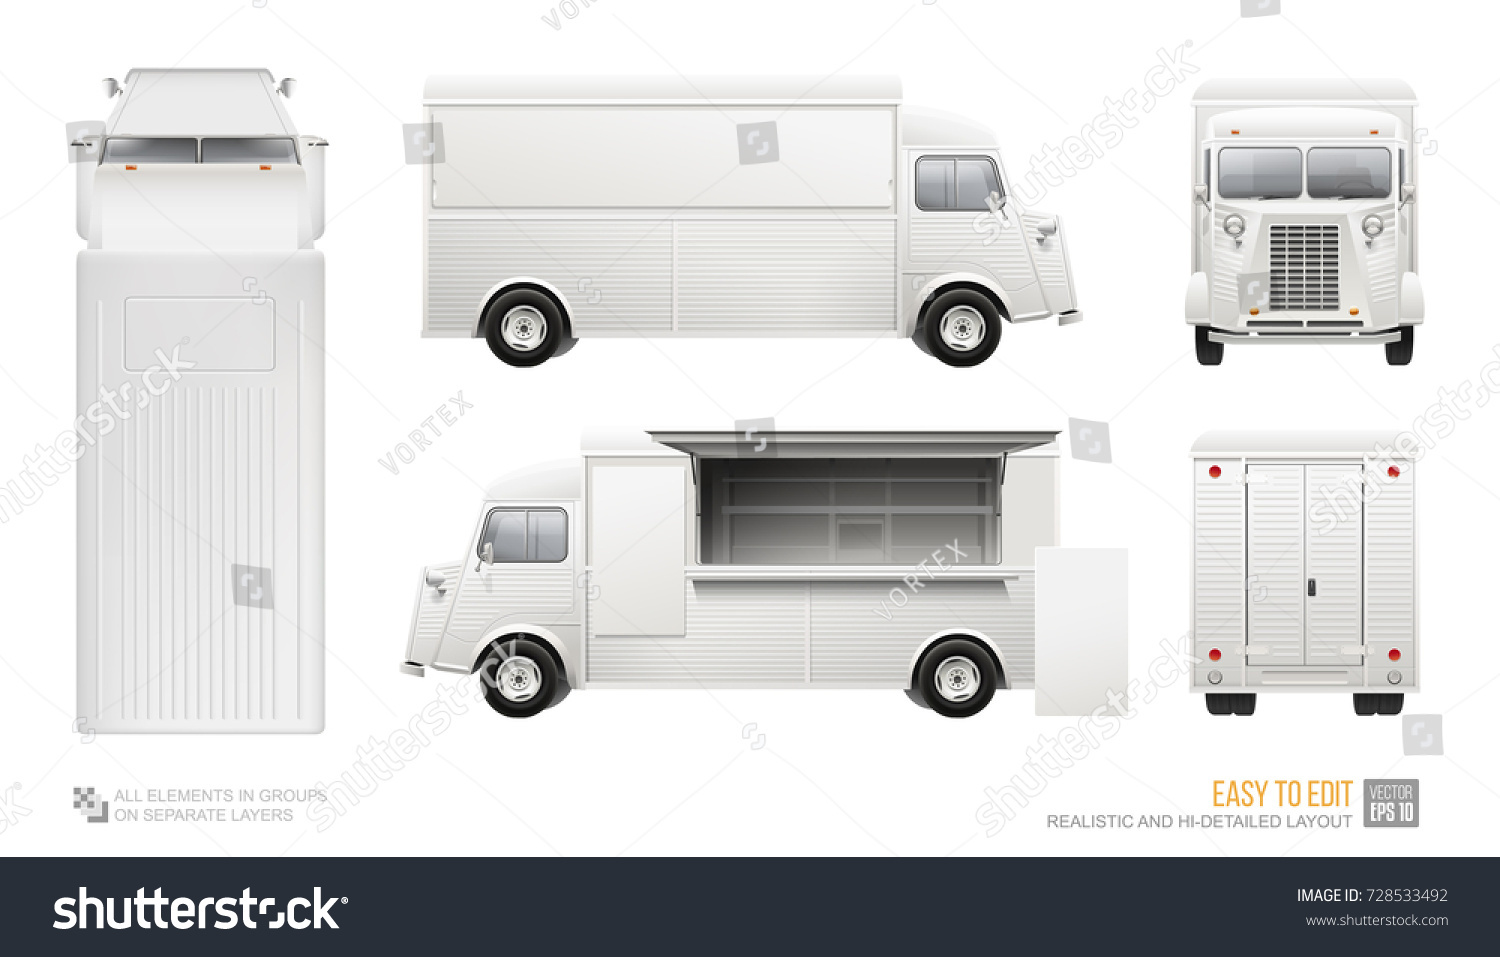 Food truck layout template choice image template design for Food truck design software